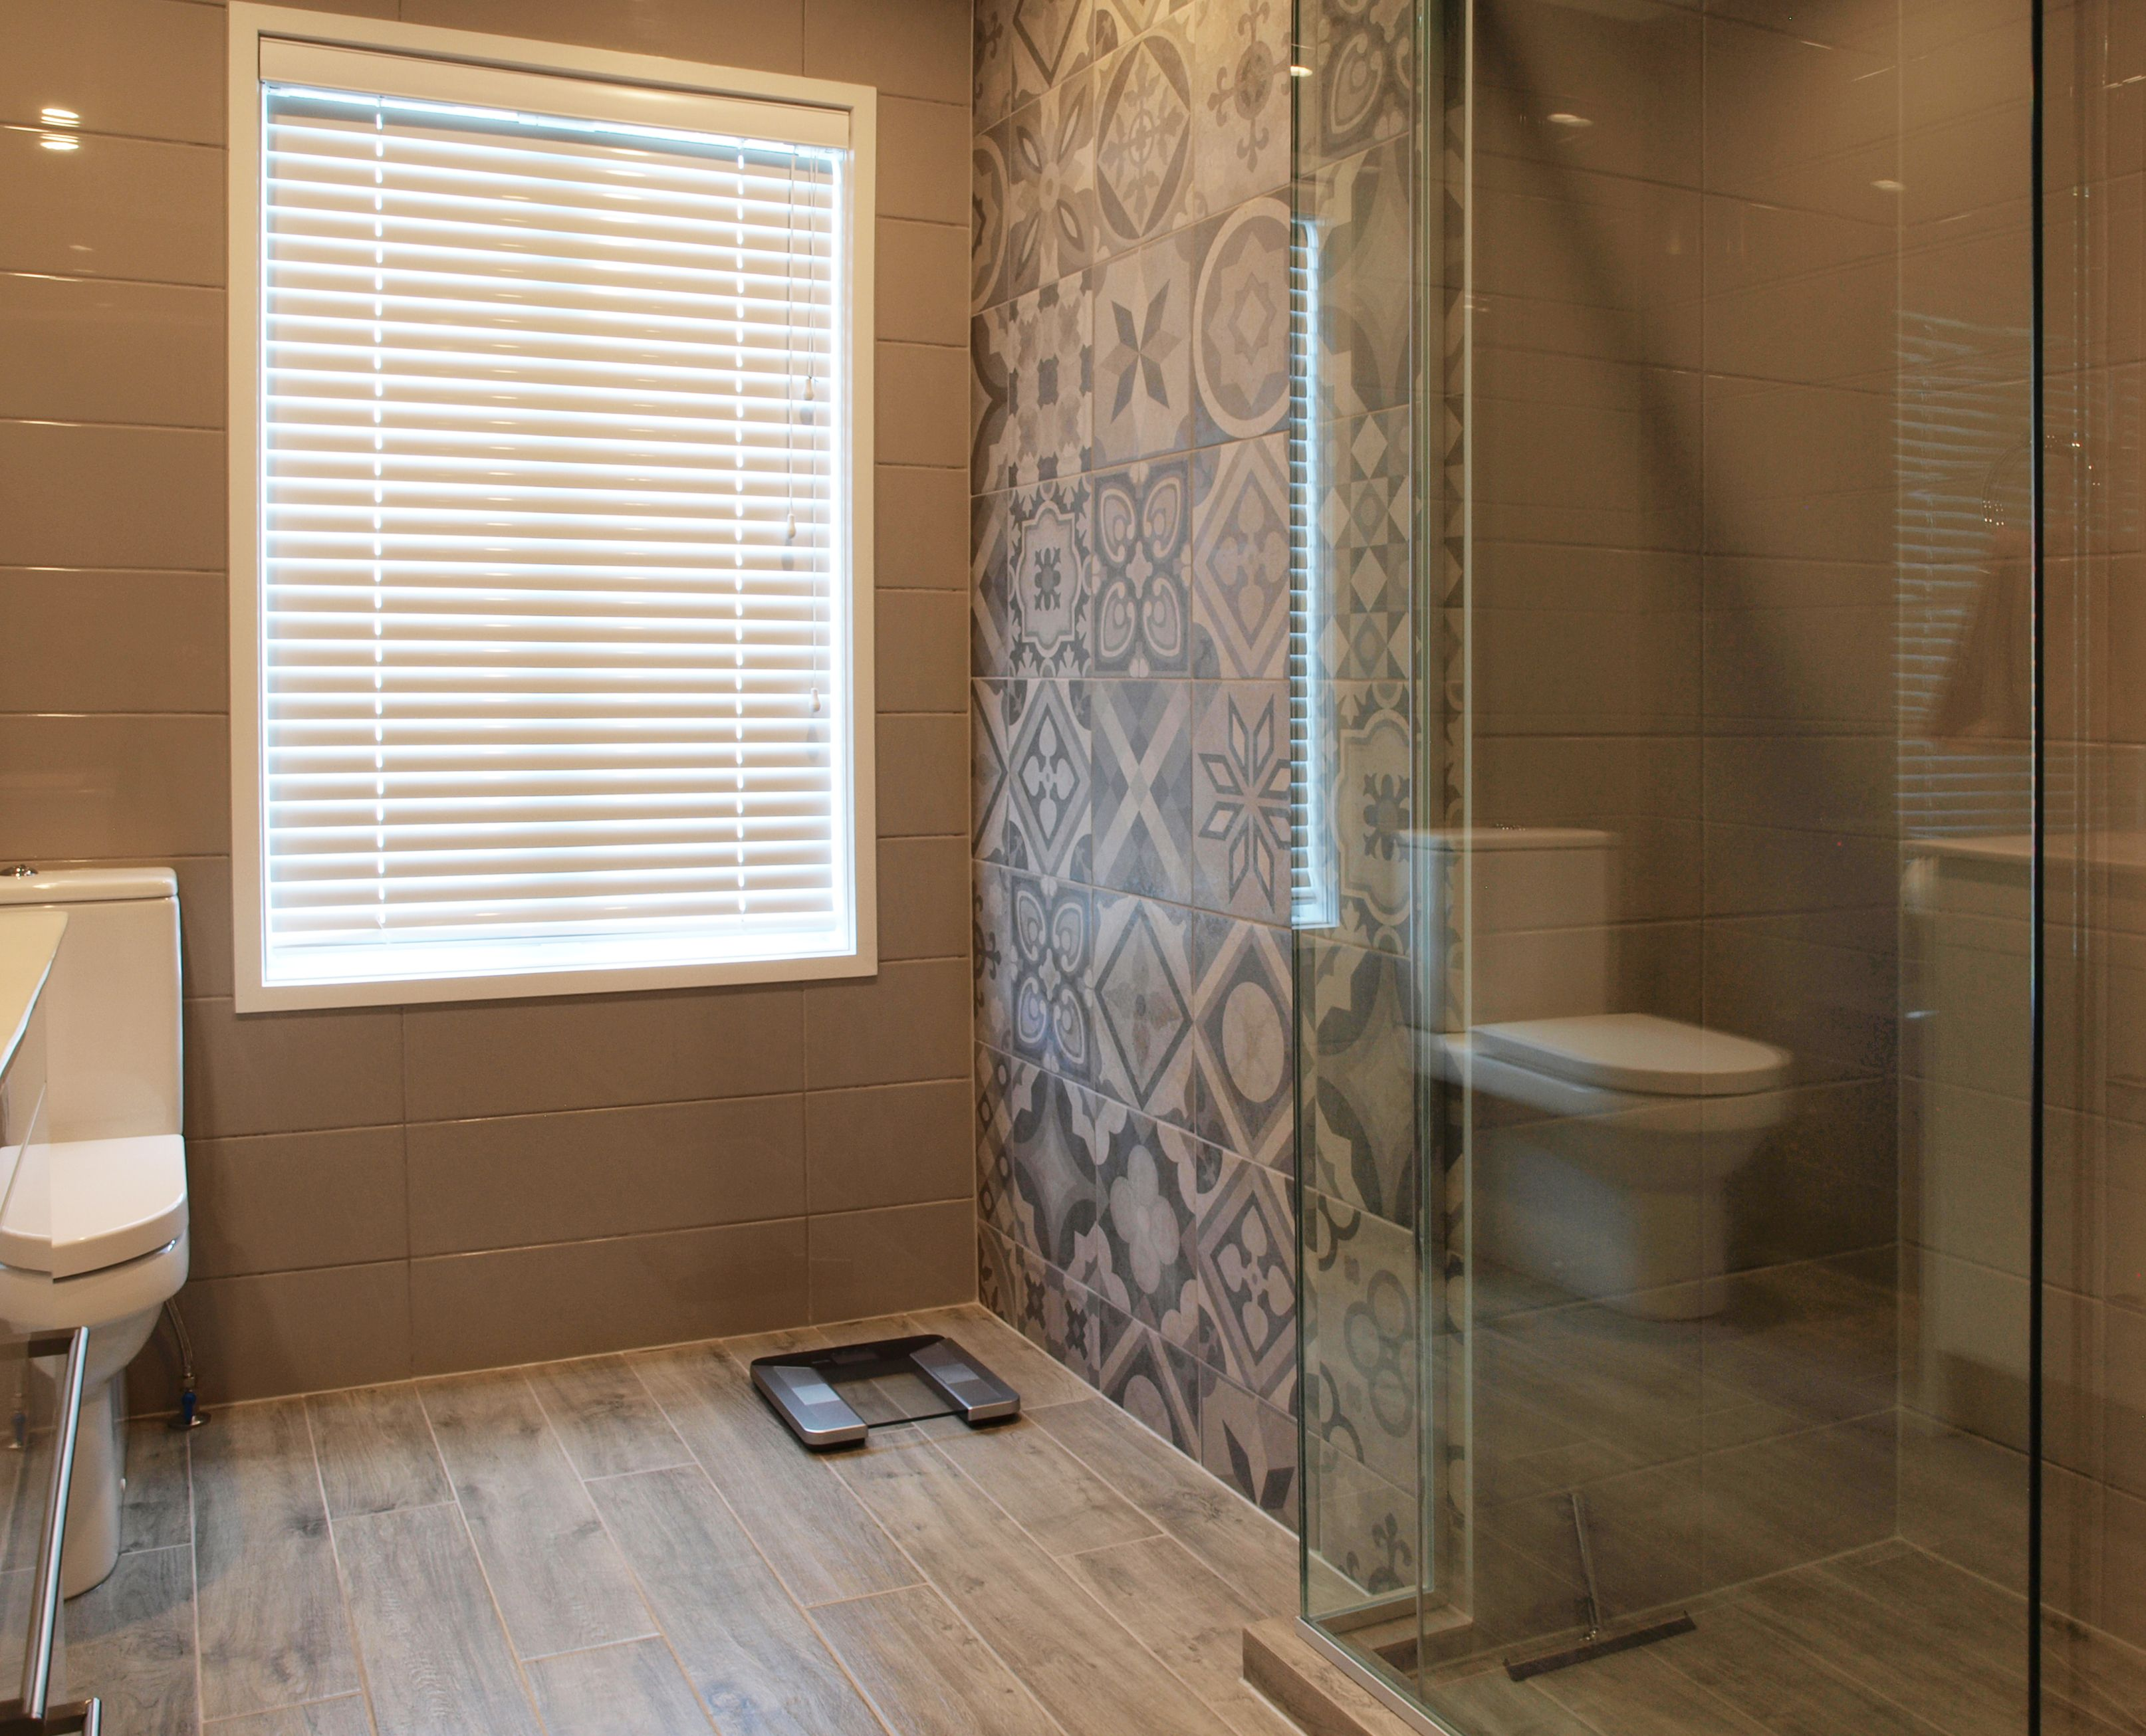 look flooring beautiful pin calm valentino shaw gray camera warm wood bathroom tile soothing wall perfectly tiles and stone